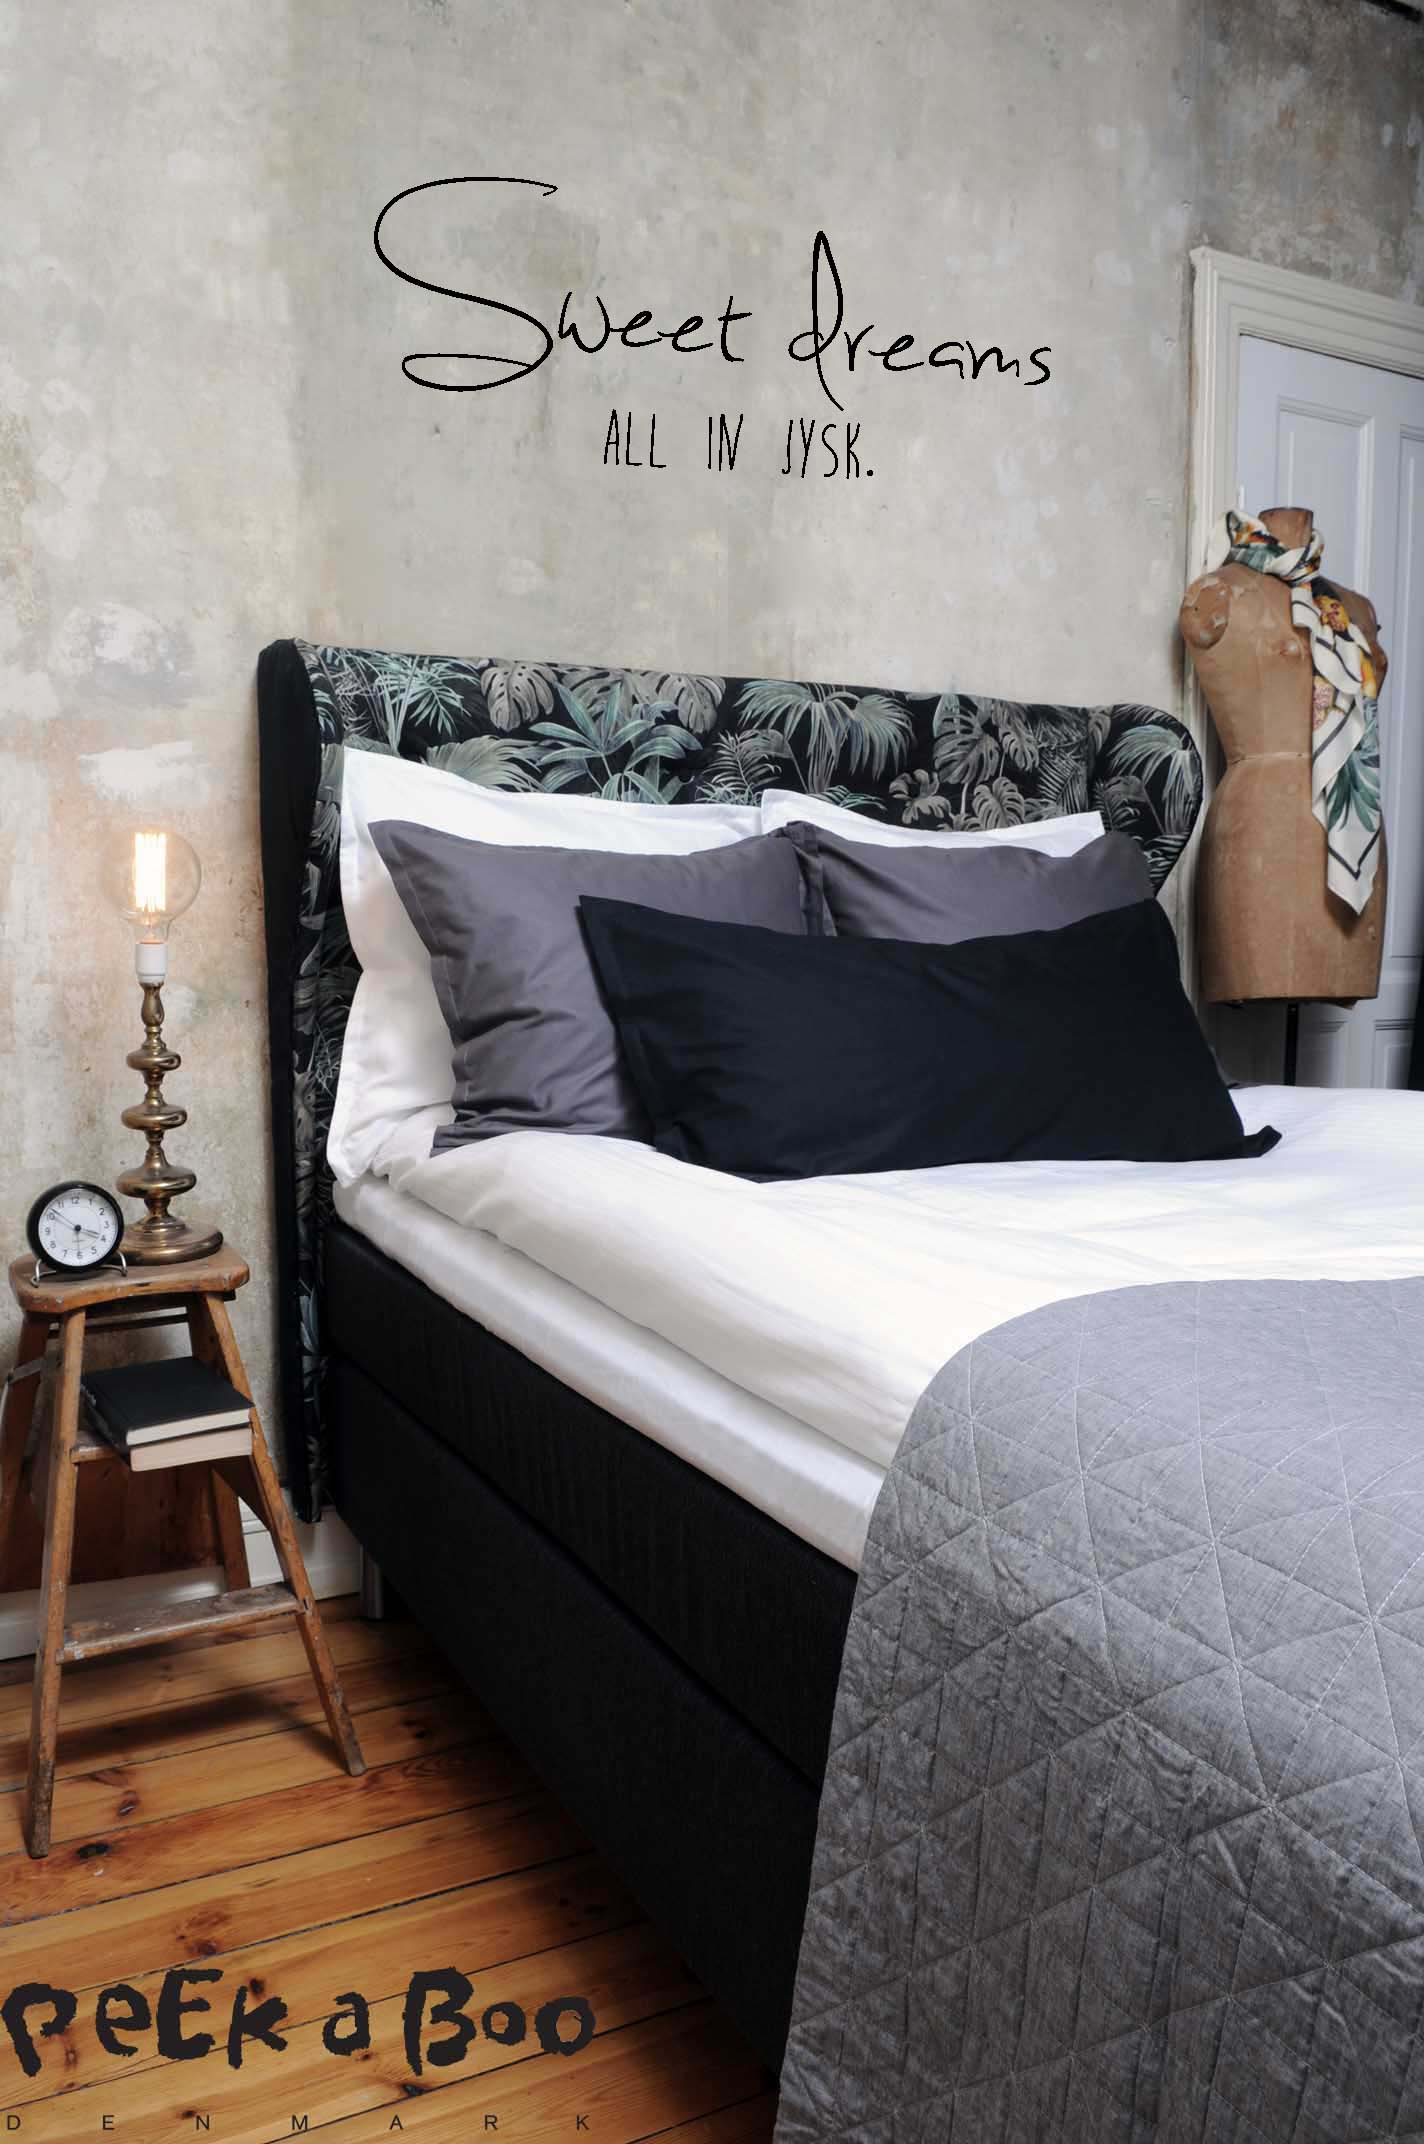 The final look of our new bed from JYSK and my DIY headboard.